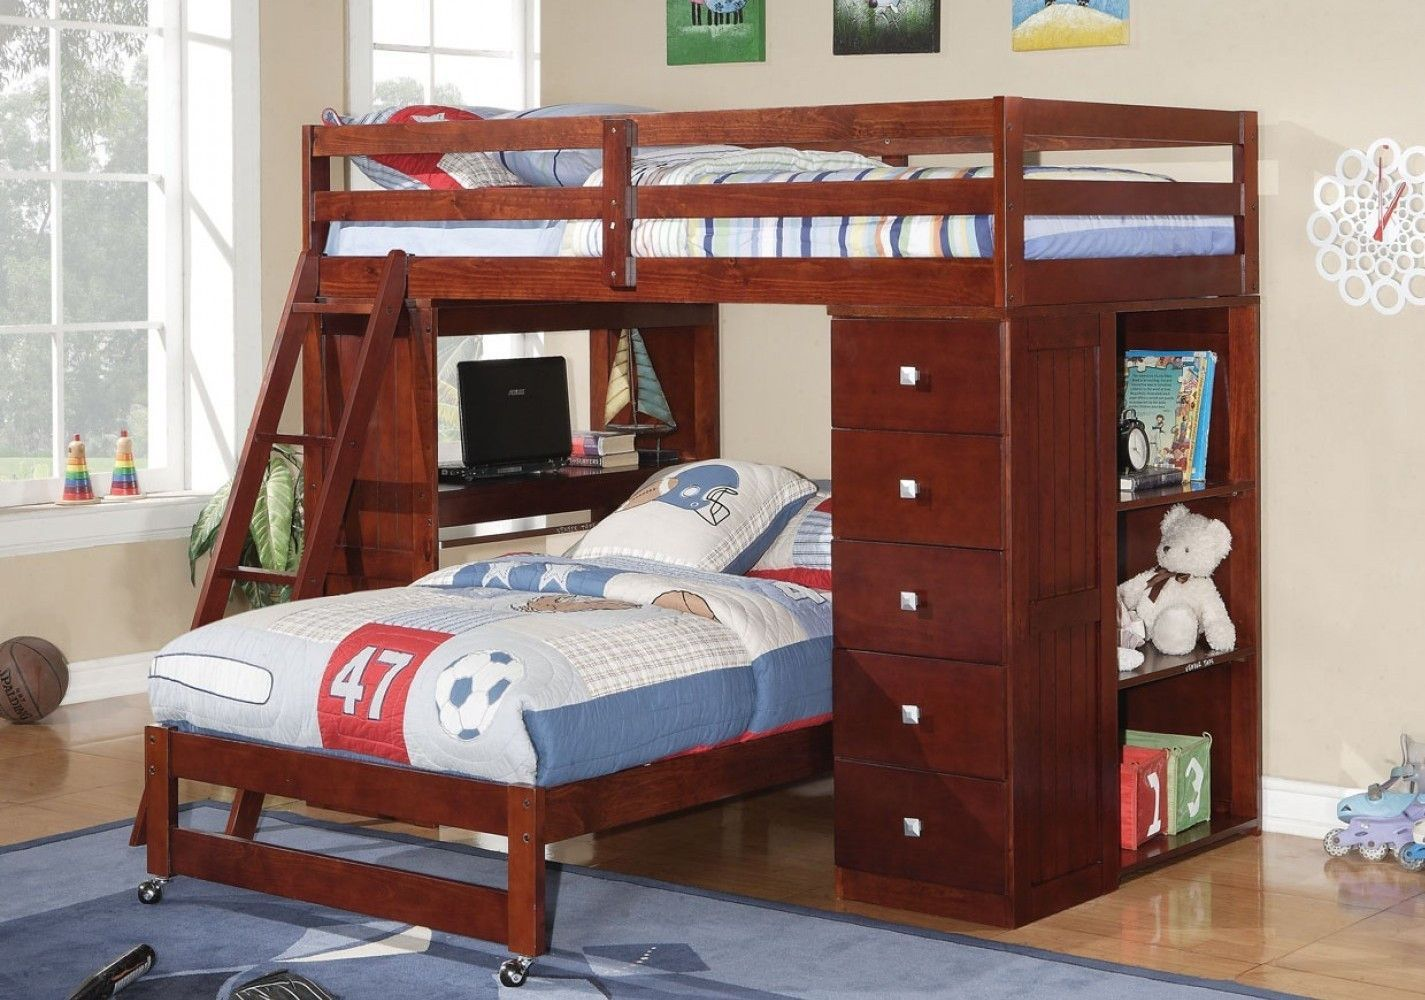 Jacob bunk bed with desk dresser and bookcase bunk bed desk and